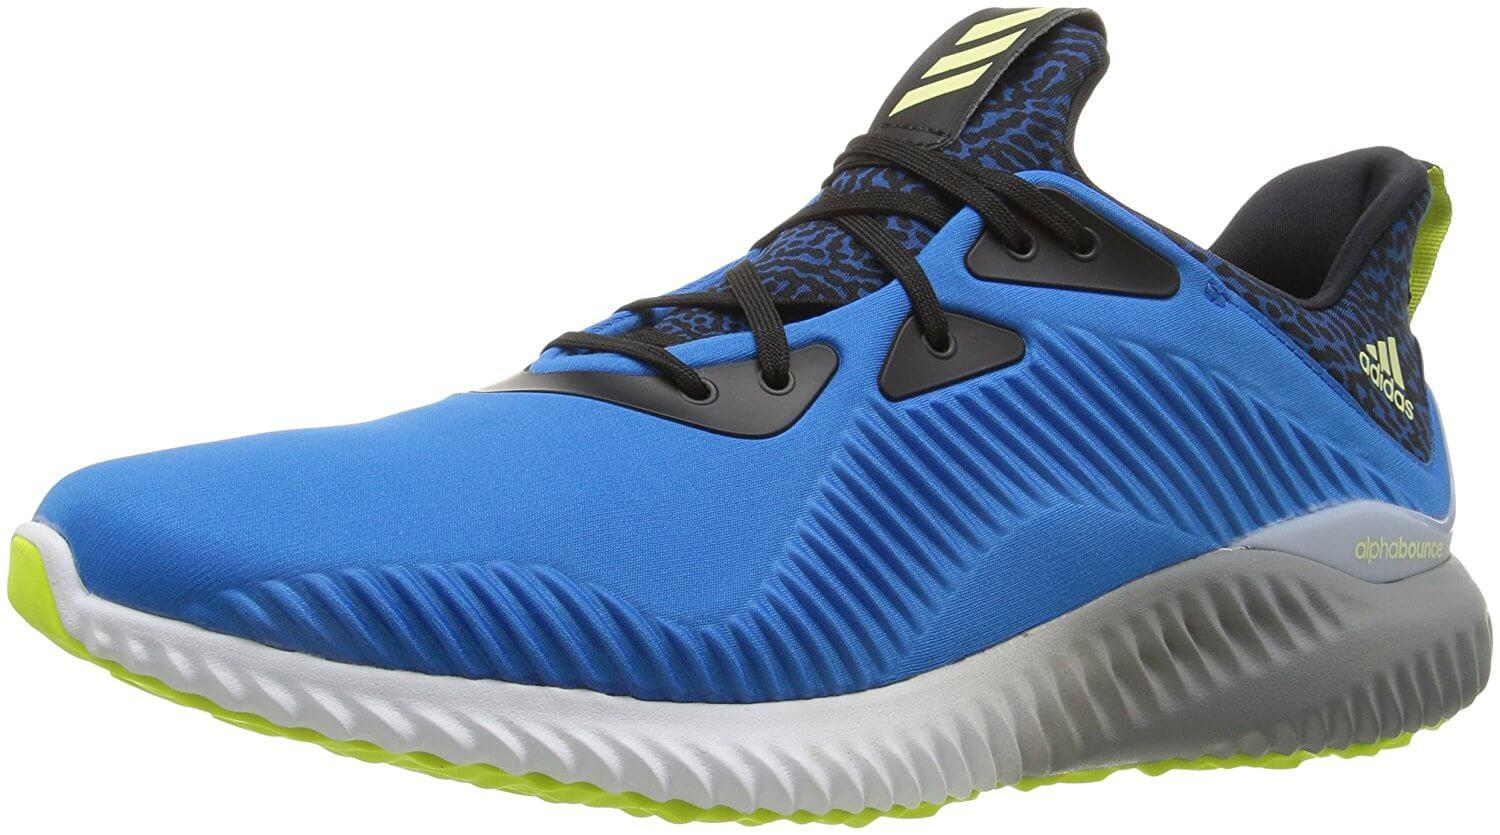 Adidas Alphabounce Reviewed - To Buy or Not in Apr 2019  be5a2800d